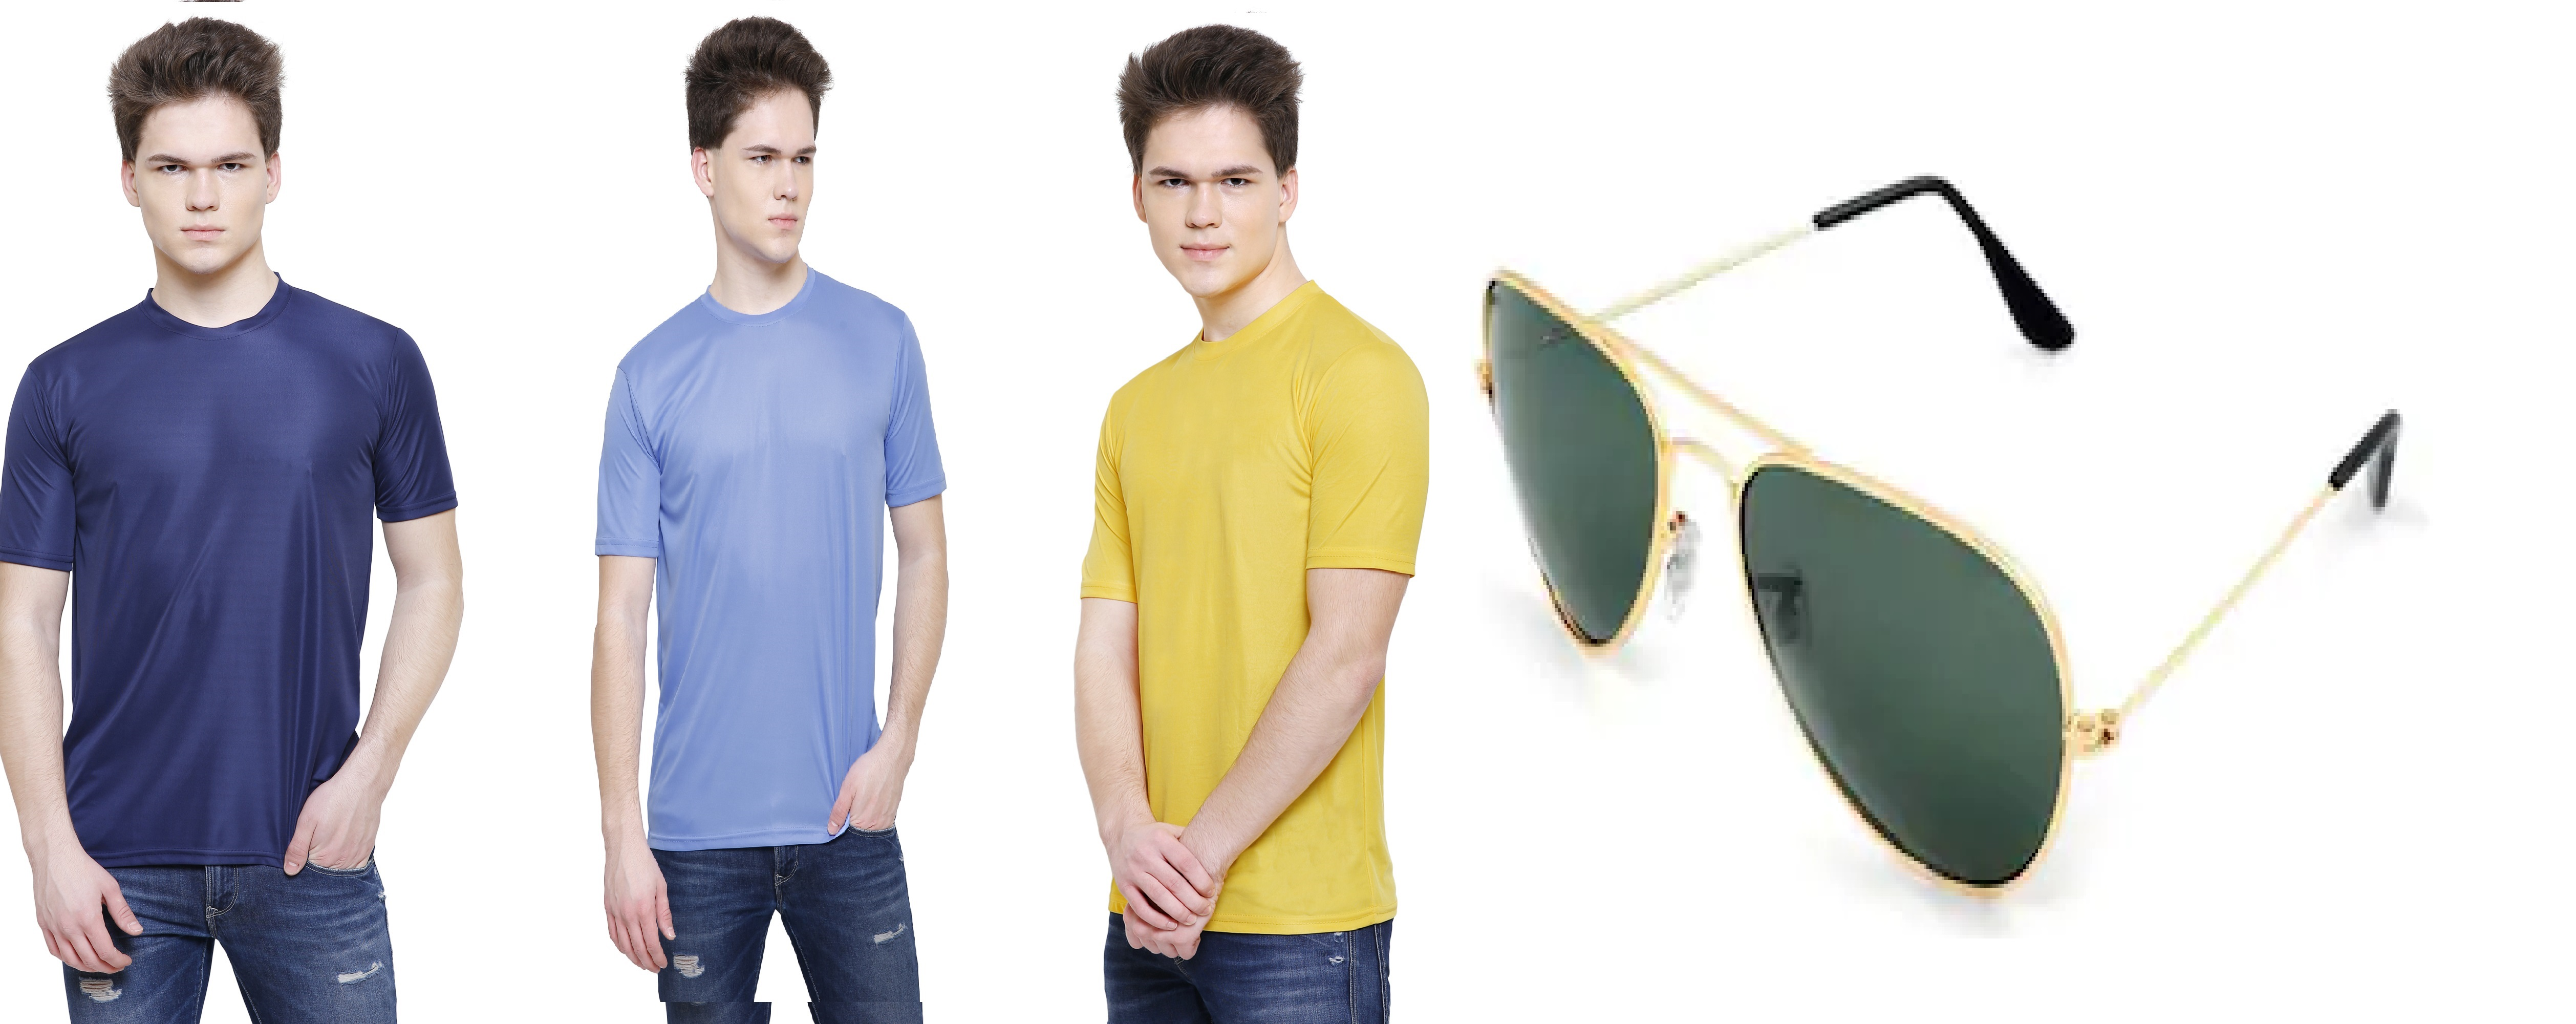 Solid Men's Round Neck SKY BLUE,Dark Blue,YELLOW T Shirt  Pack of 3  Free Shades